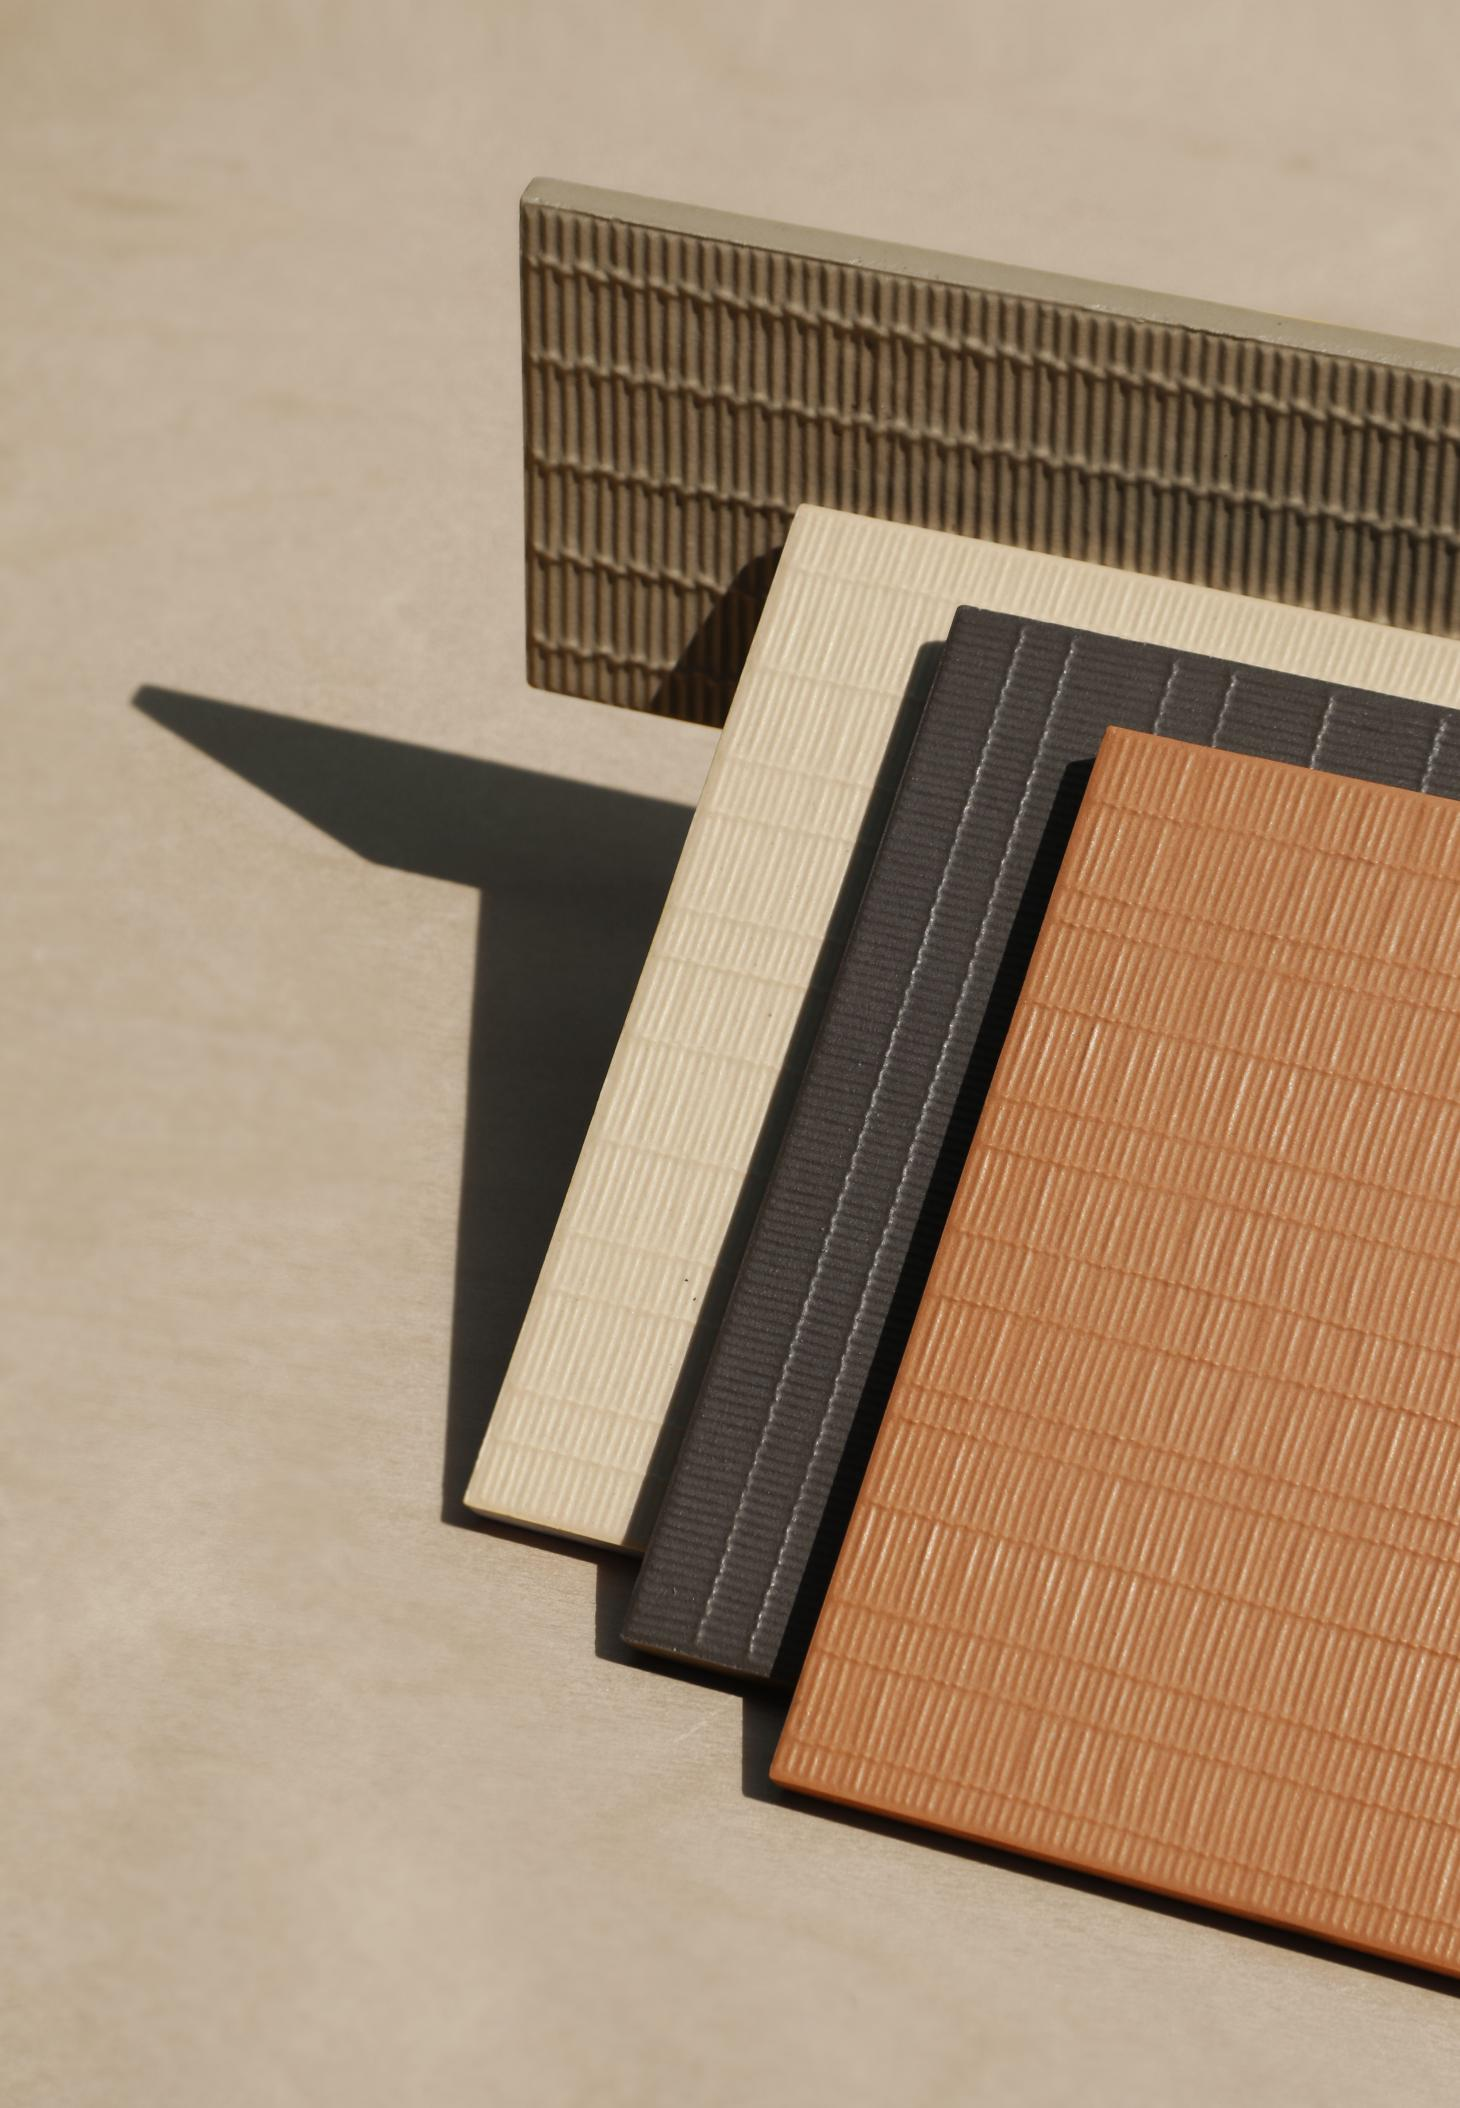 Tiles with textured surfaces in beige, brown and olive green